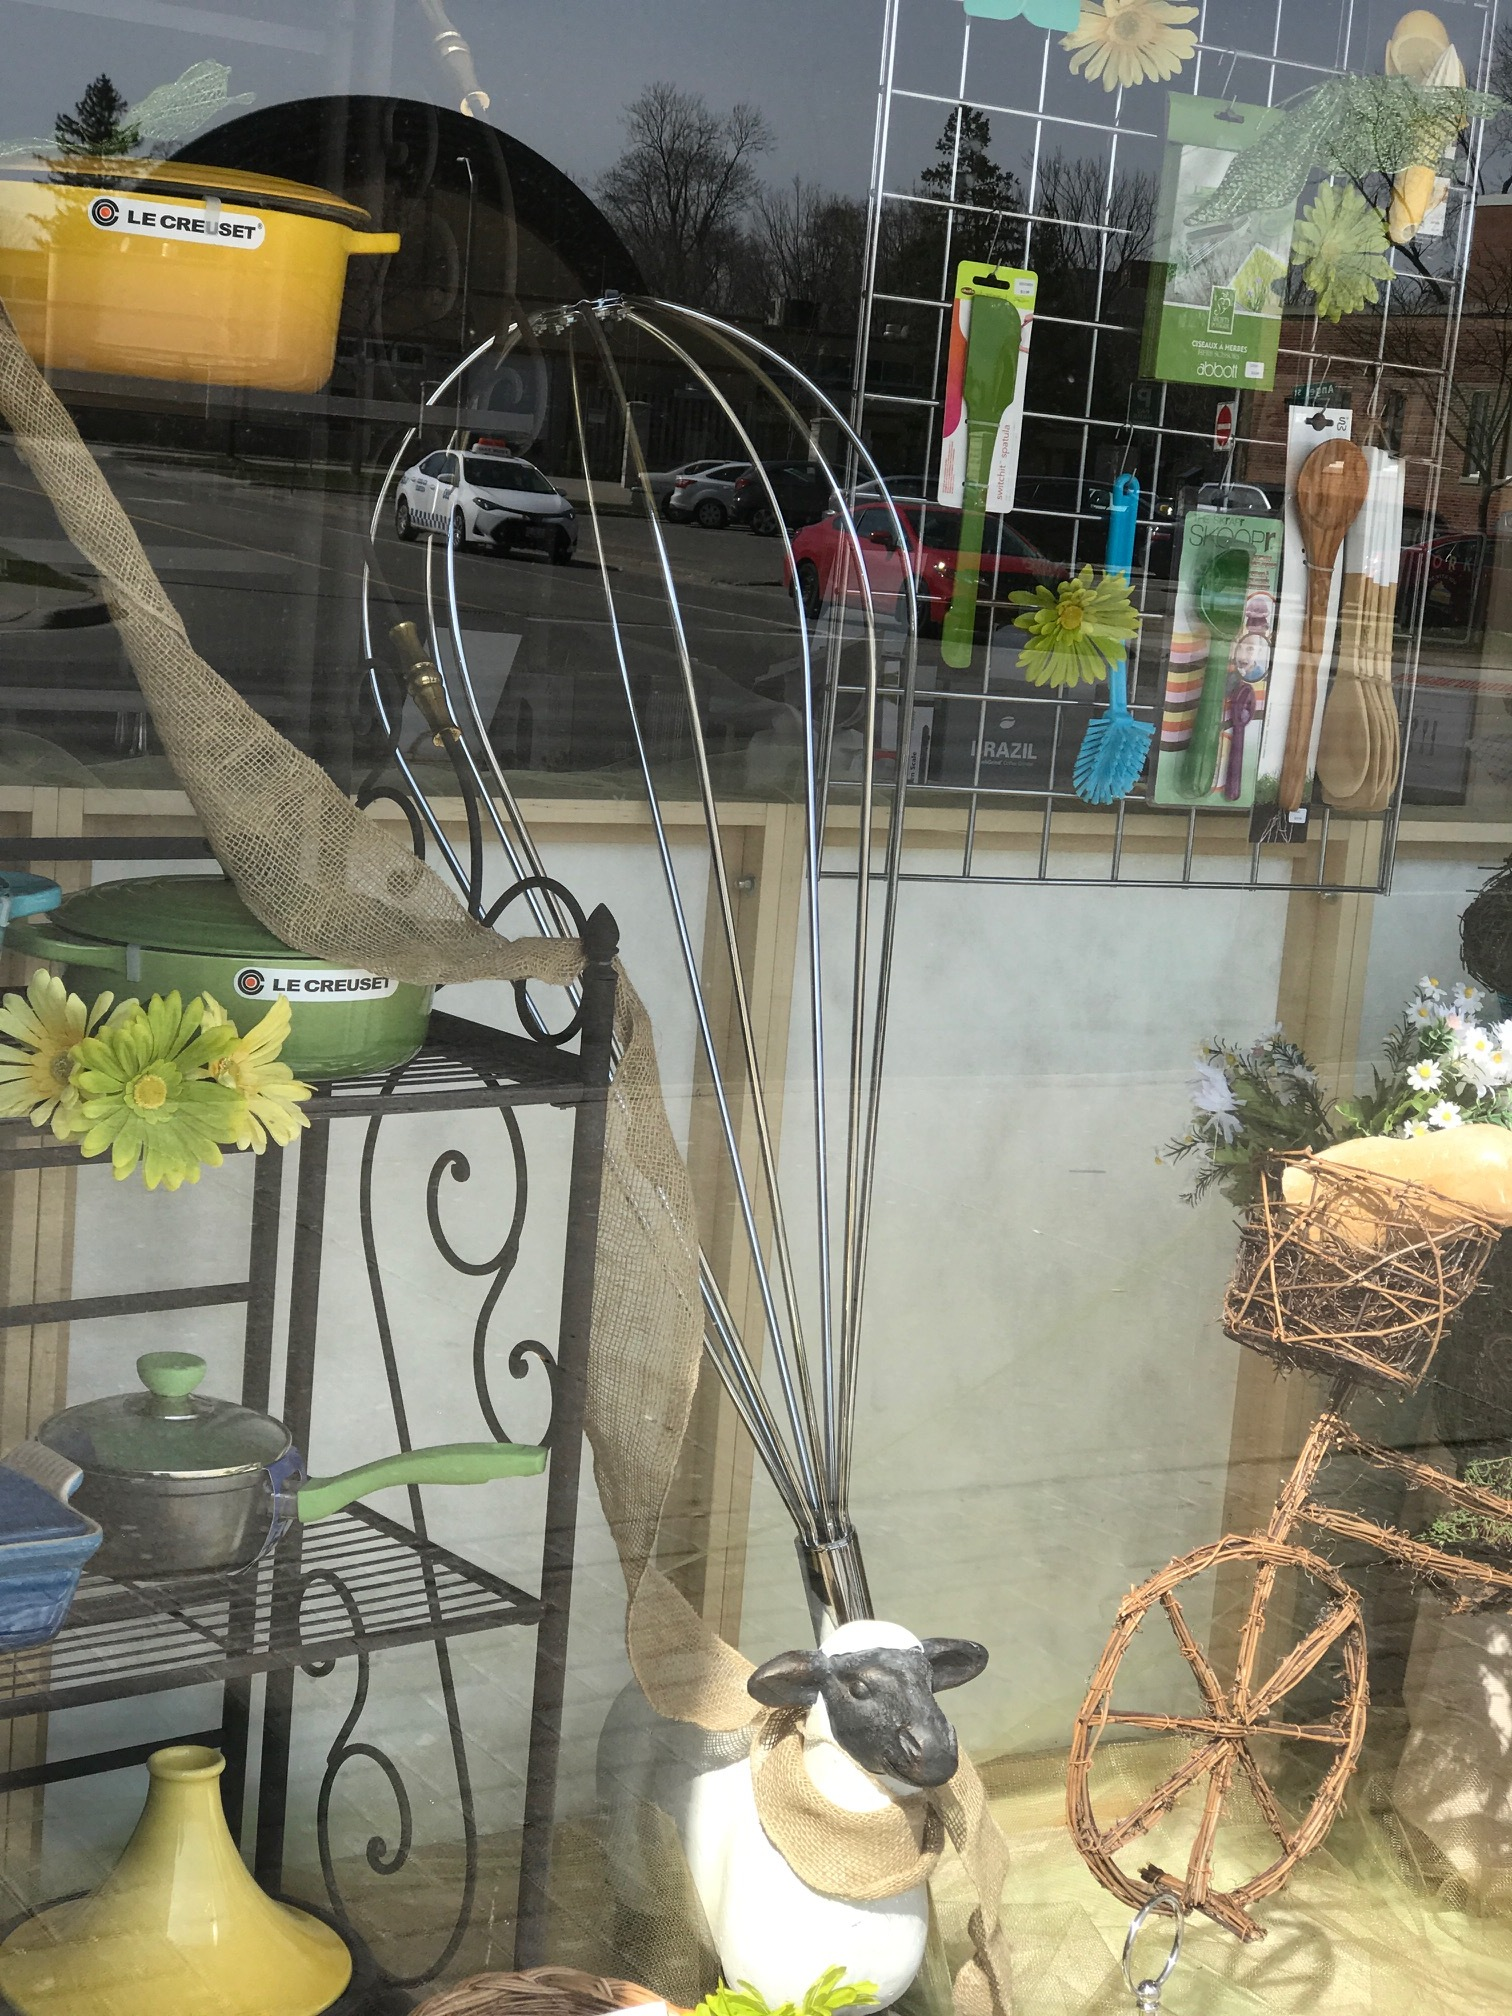 Another whimsical window.